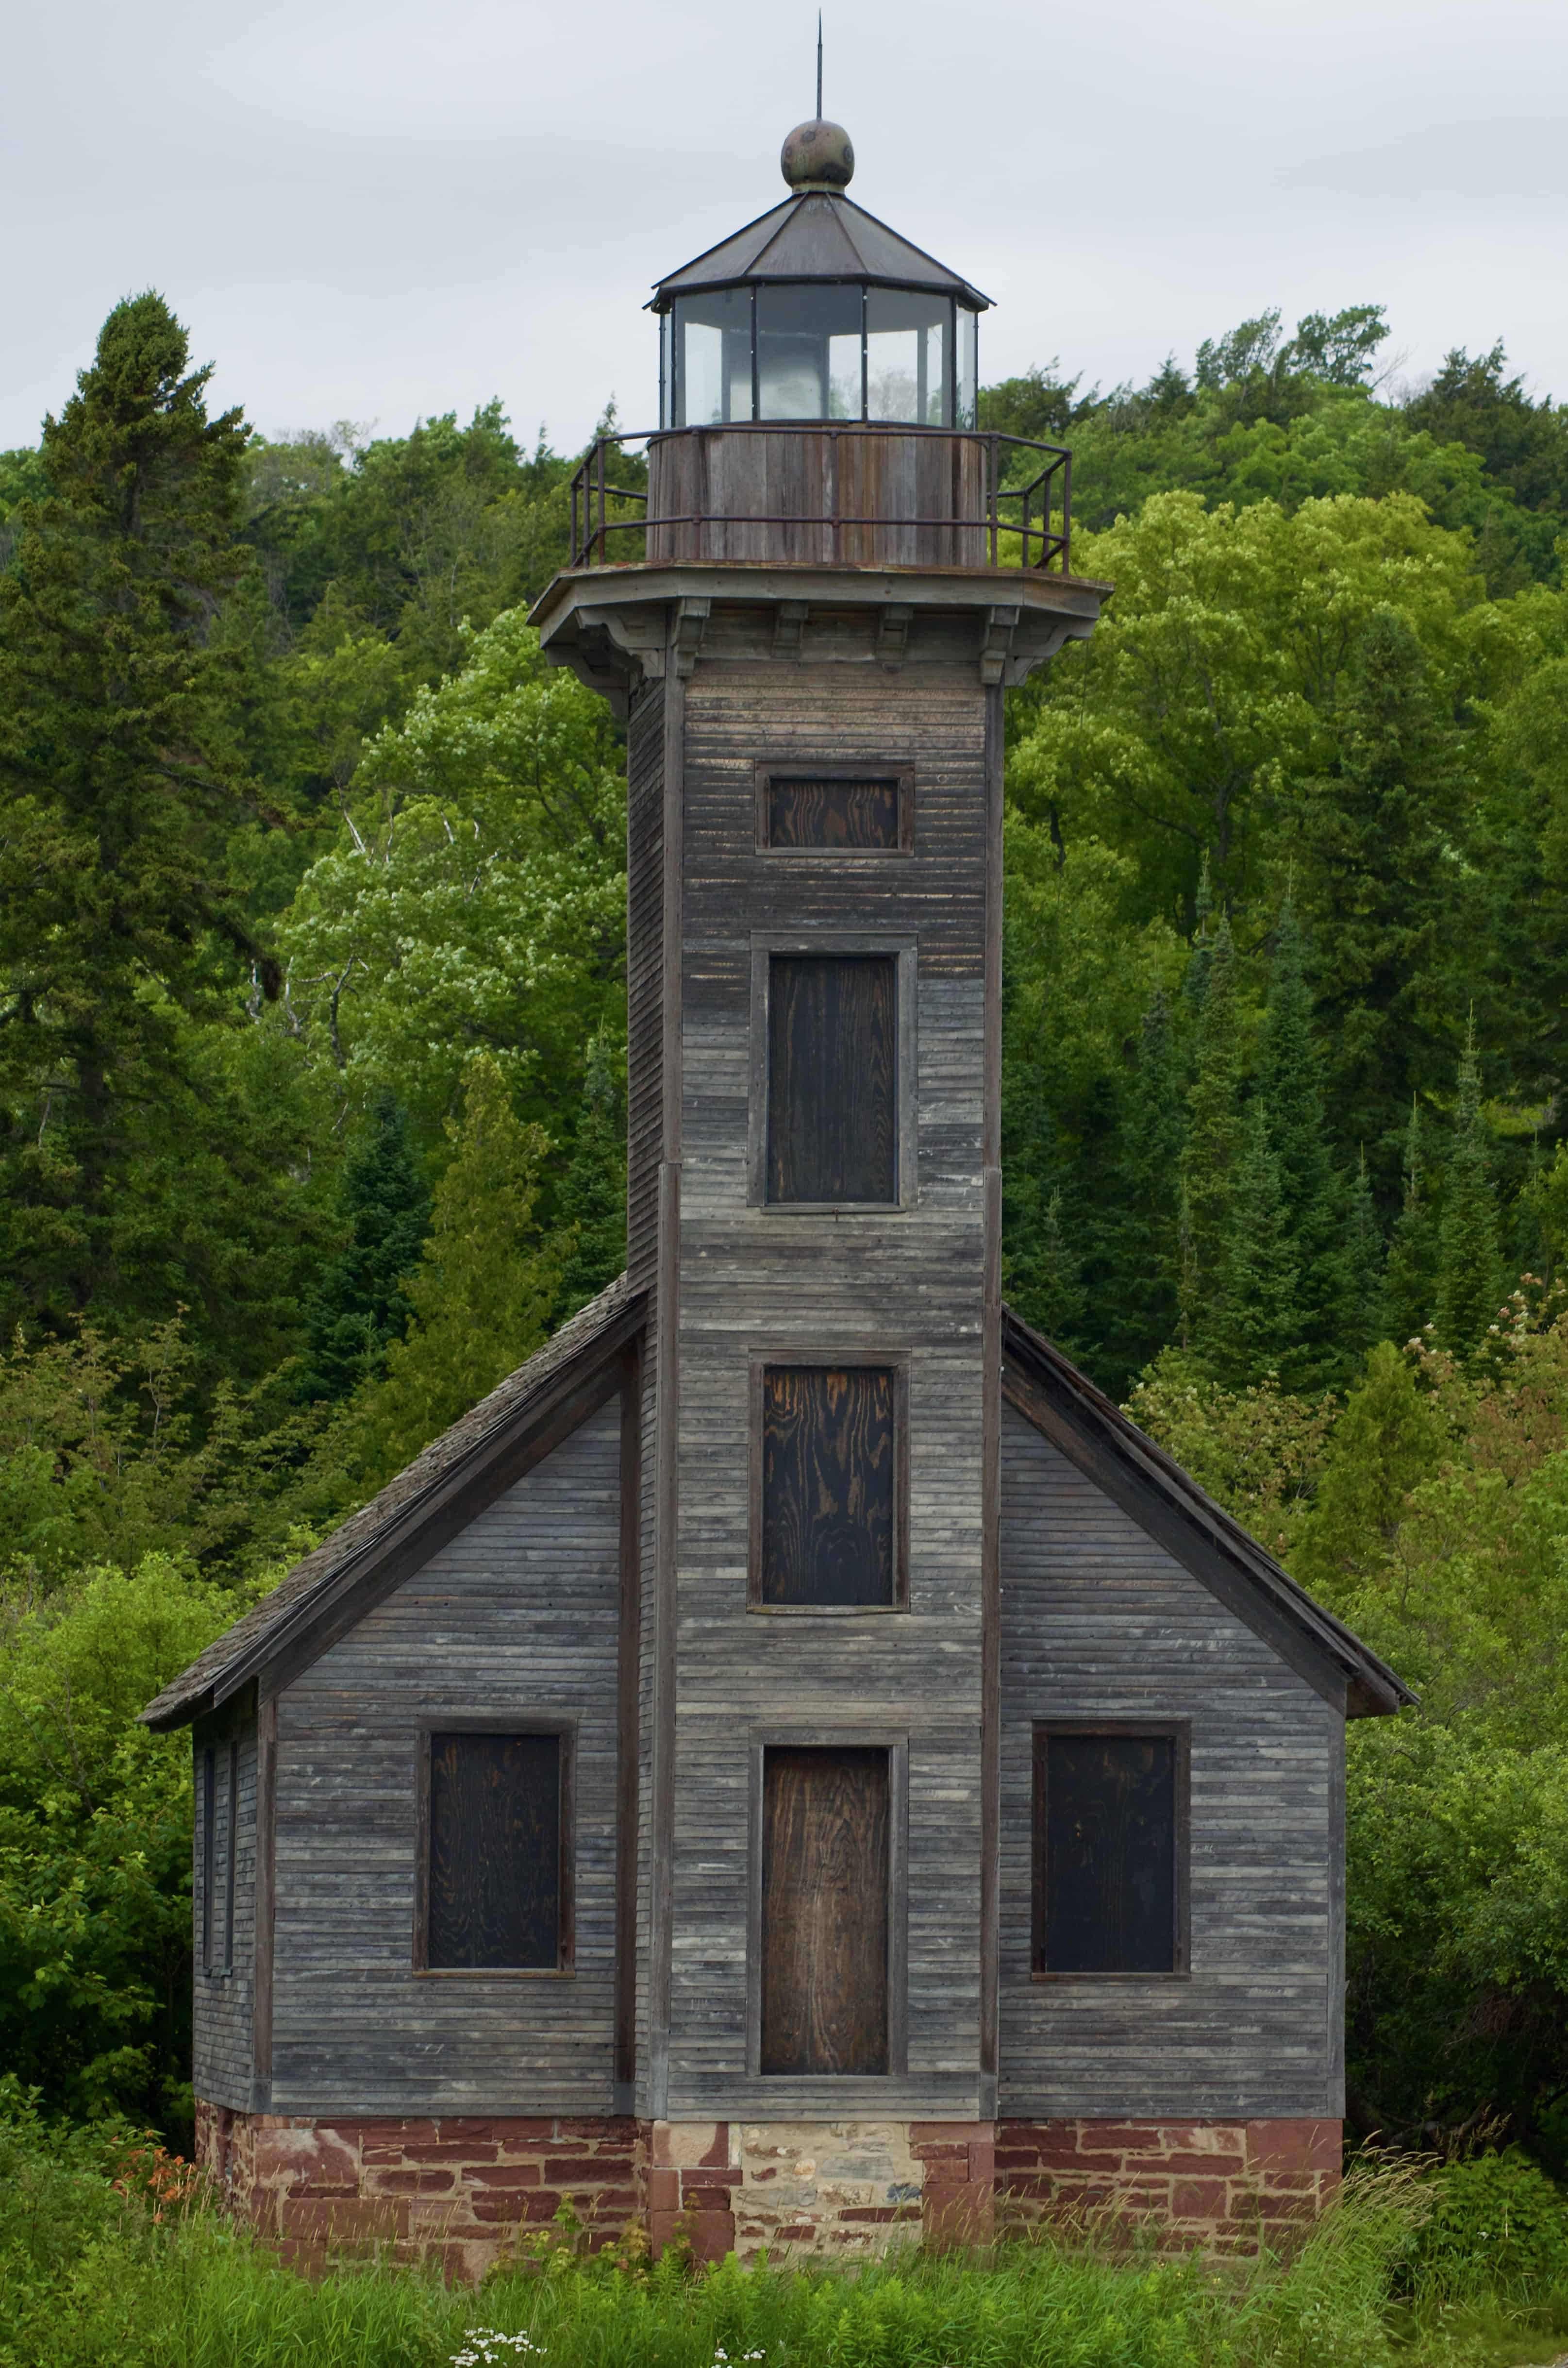 Historic Lighthouse on Shipwreck Tours in Munising Michigan